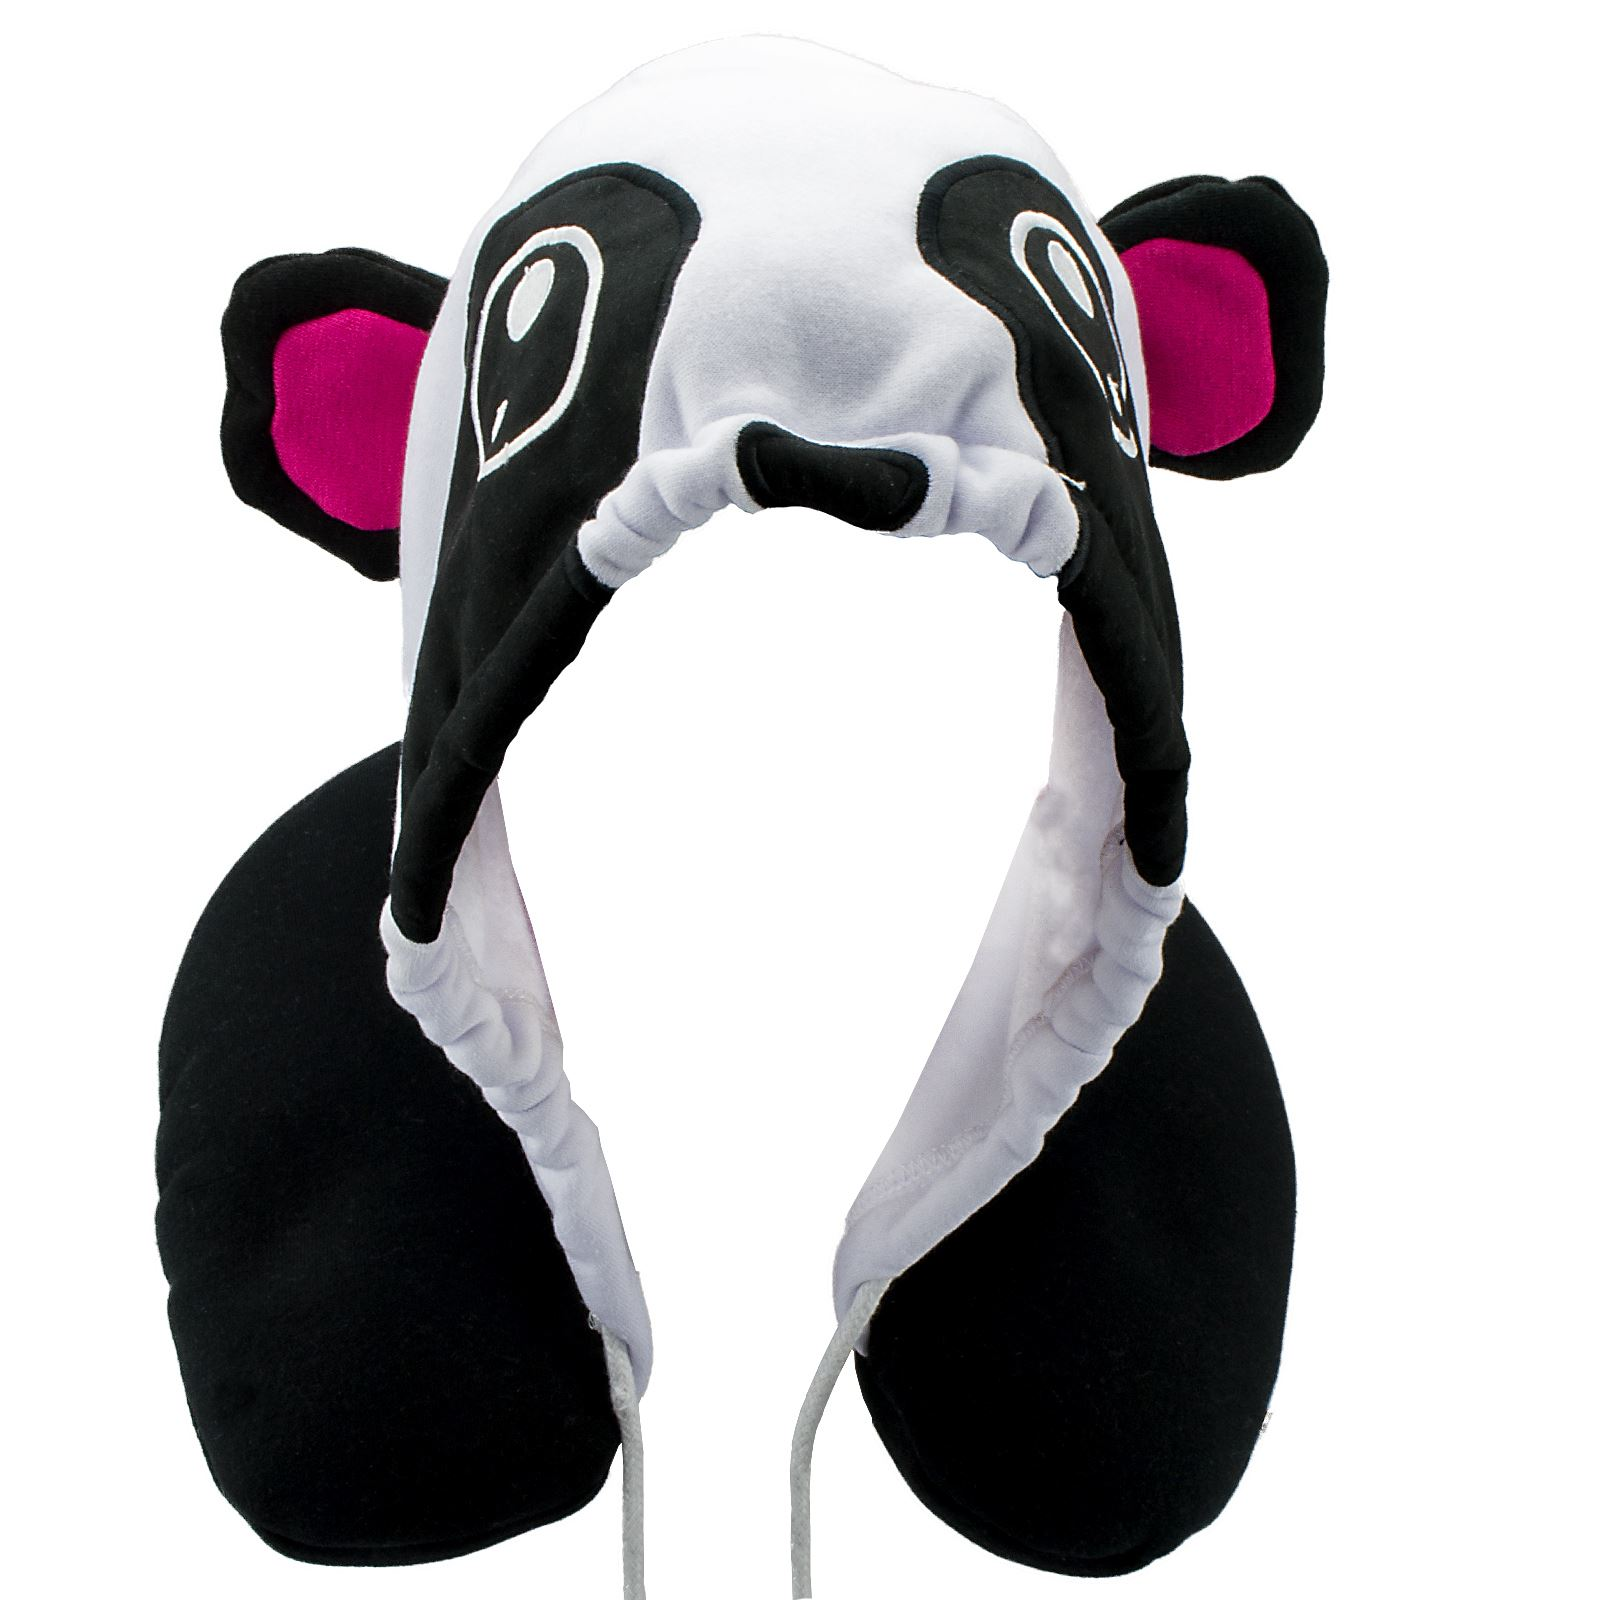 Animal Neck Pillow For Adults : New Animal Hoodie Travel Pillow Micro Bead Neck Foam Adult Car Children One Size eBay